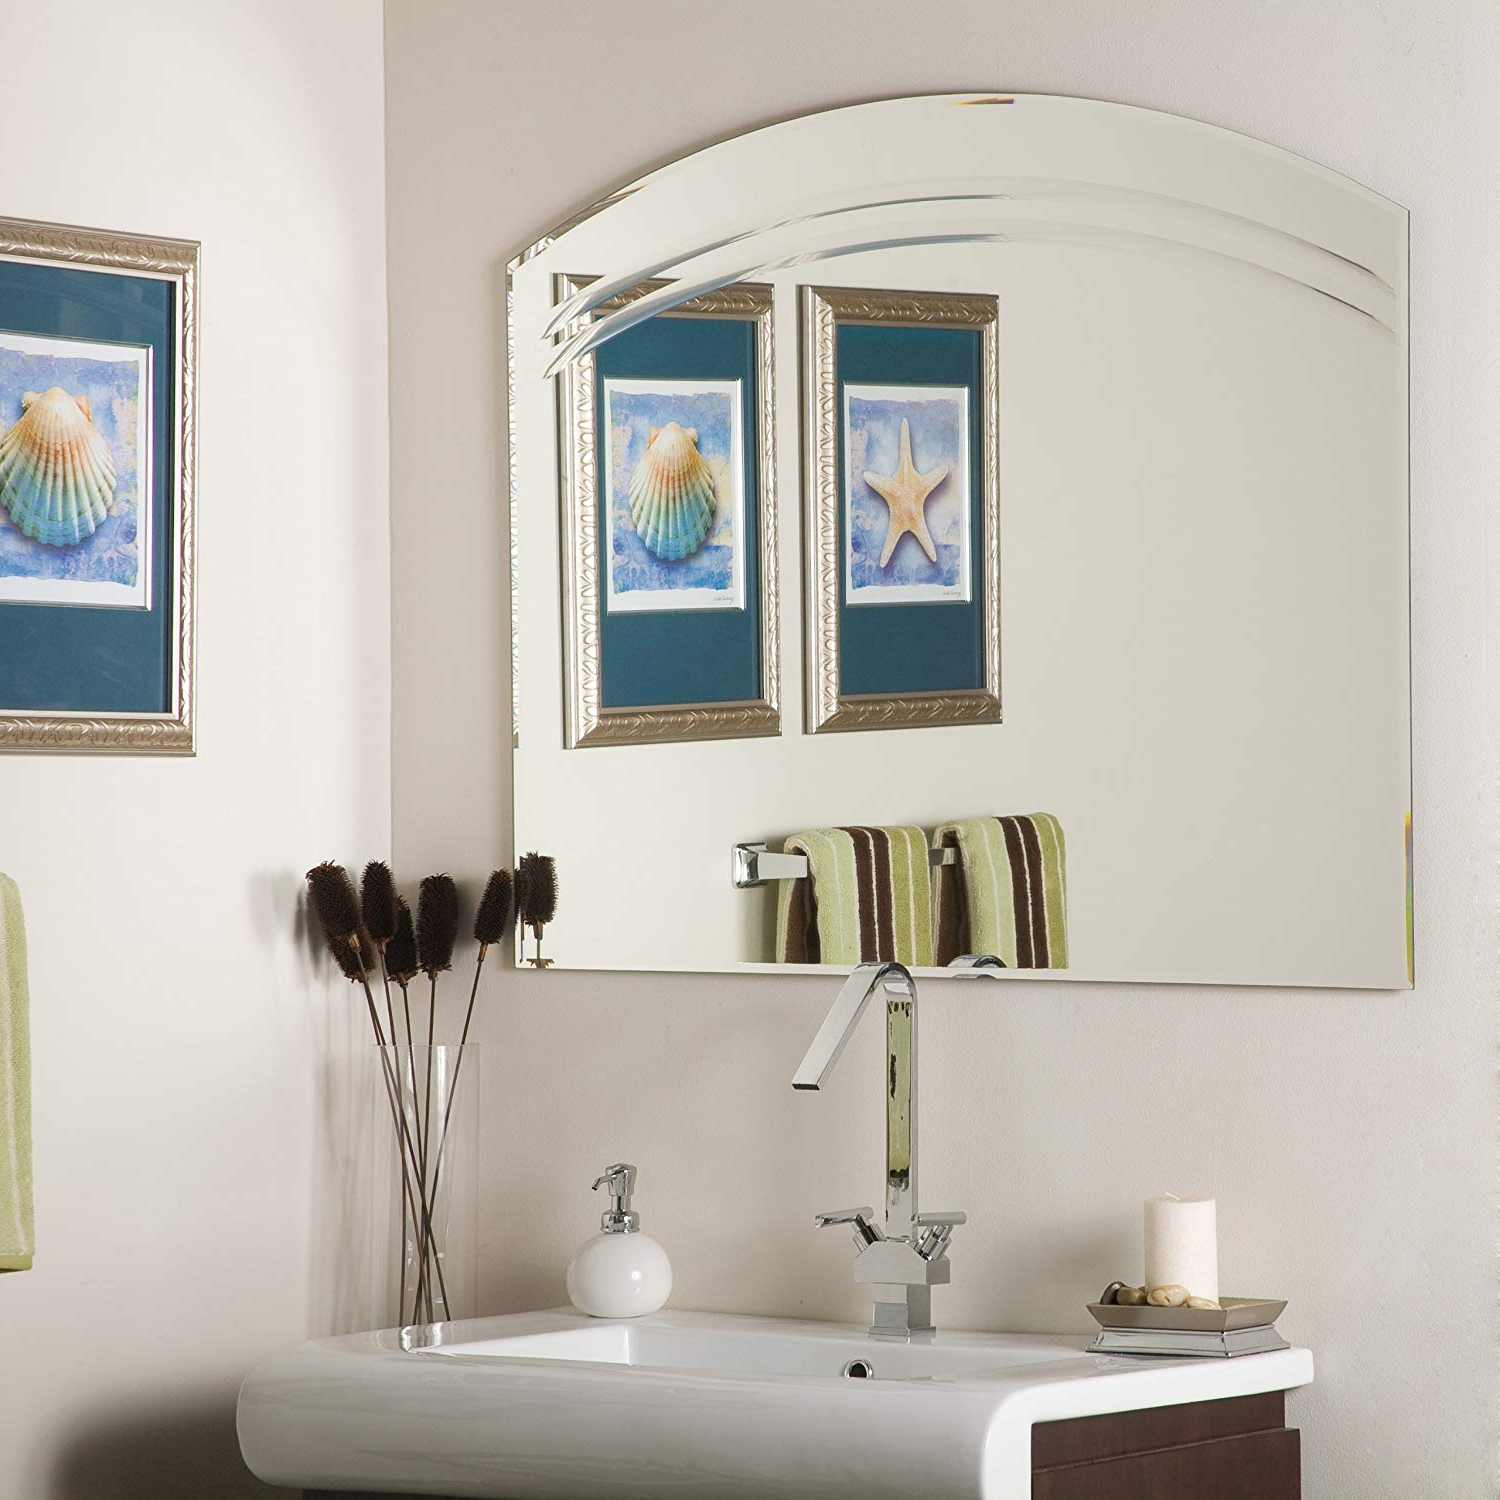 Large Bathroom Wall Mirrors Throughout Most Current Angel Large Frameless Bathroom Wall Mirror (View 12 of 20)